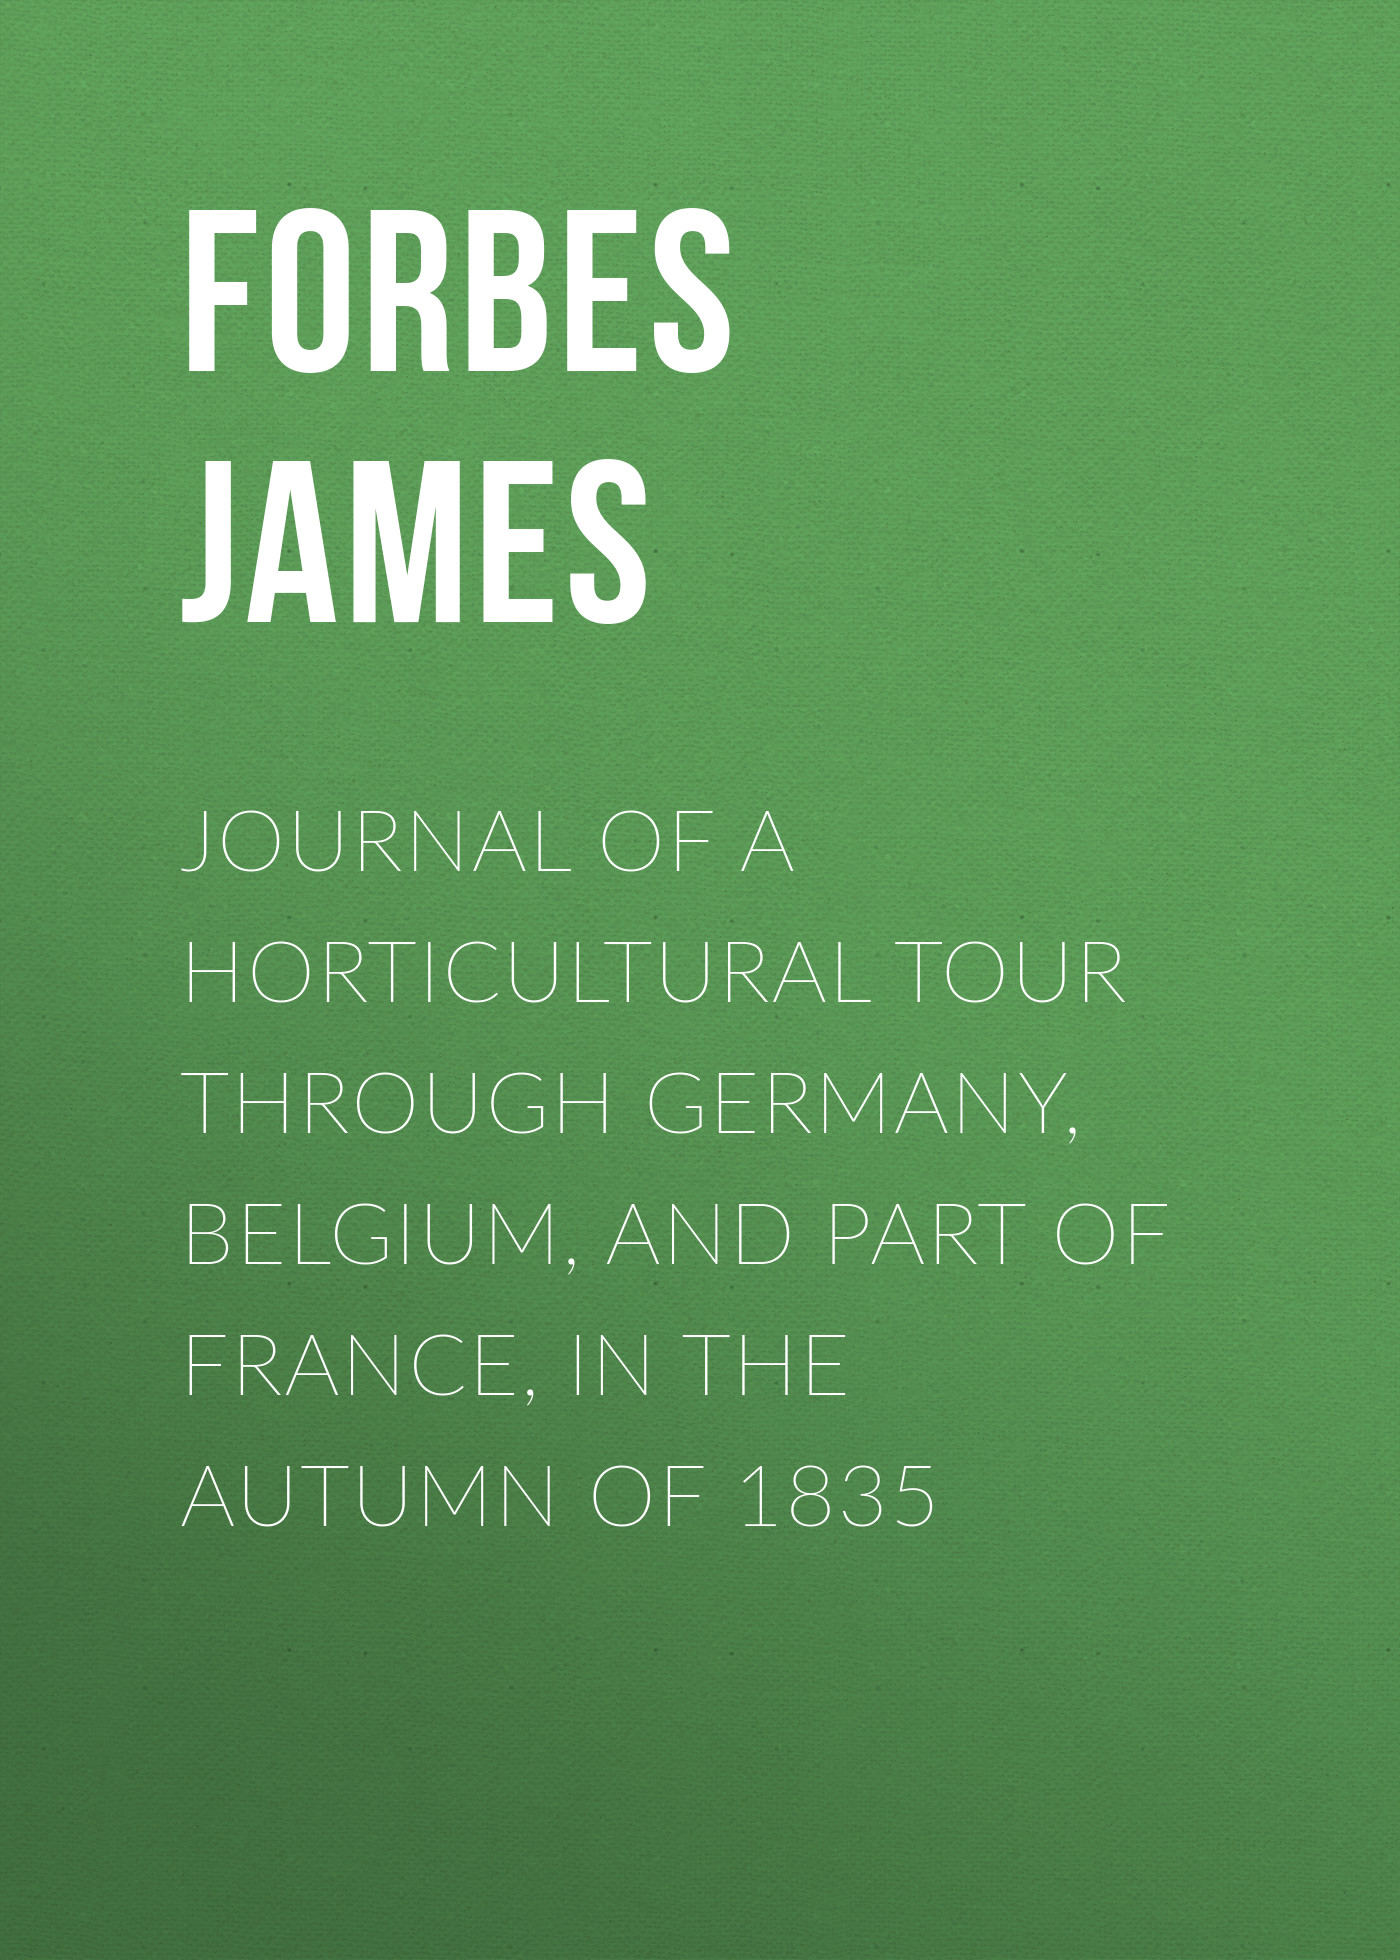 лучшая цена Forbes James Journal of a Horticultural Tour through Germany, Belgium, and part of France, in the Autumn of 1835